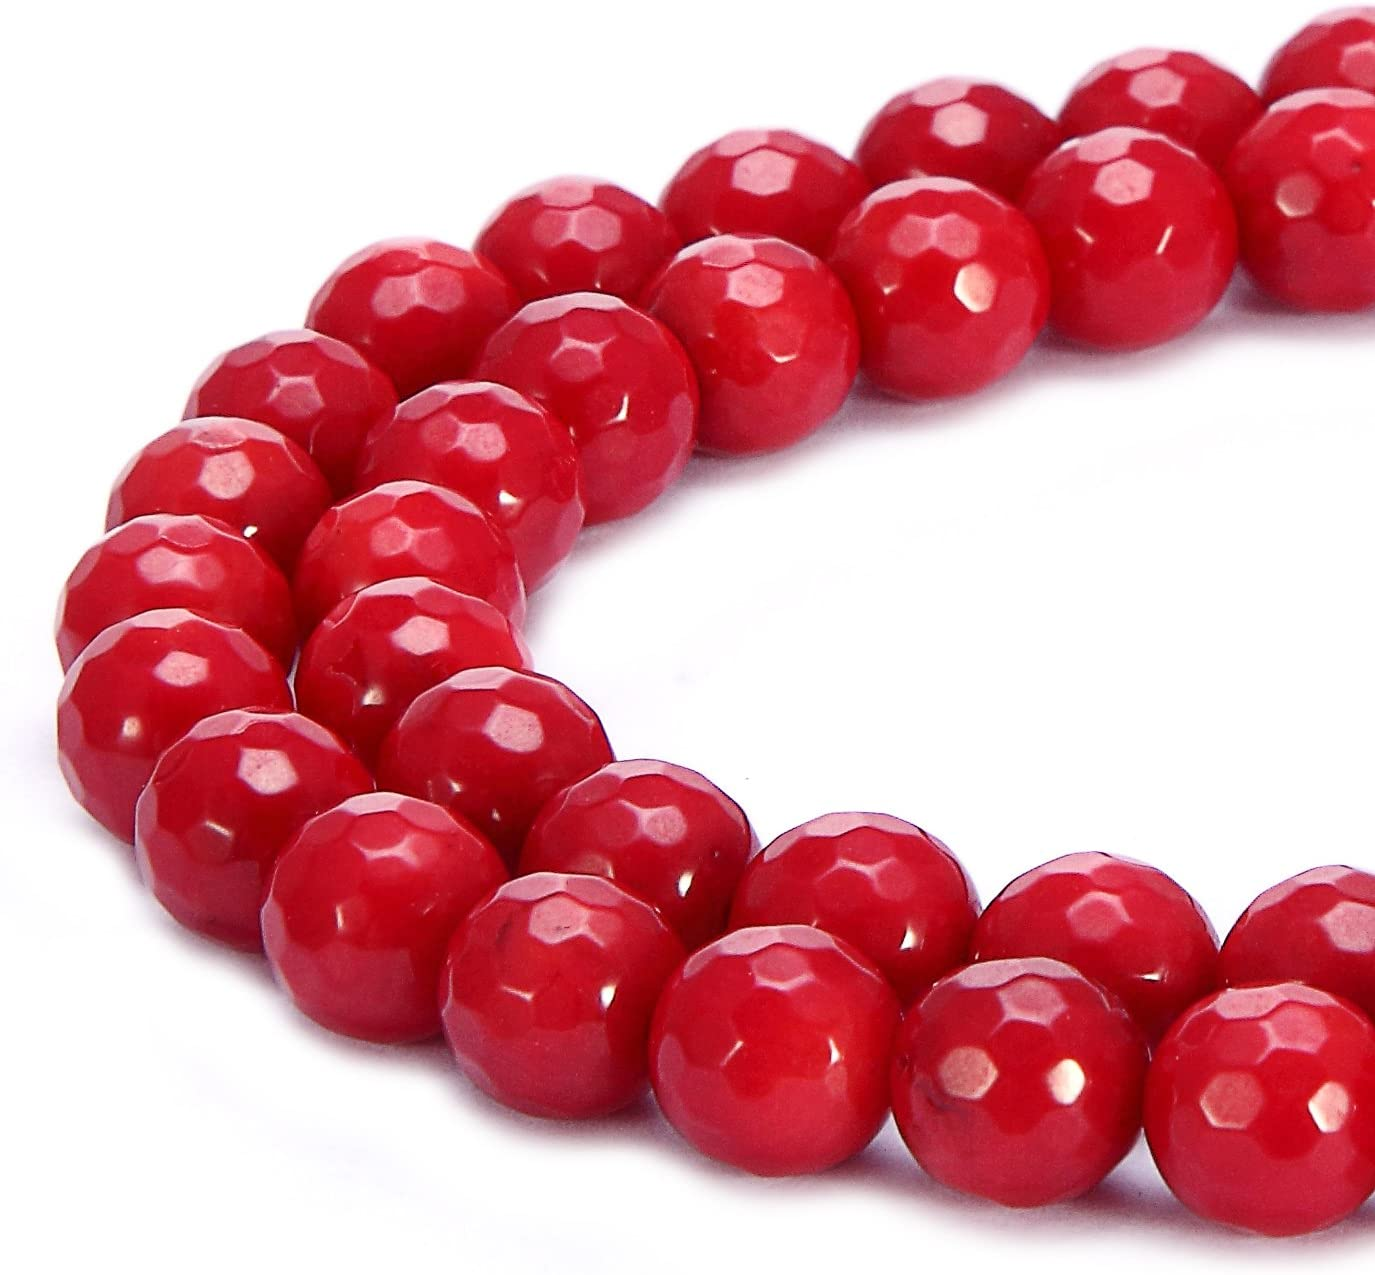 BRCbeads Natural Africa Red Japser Gemstone Loose Beads Faceted Round 4mm Crystal Energy Stone Healing Power for Jewelry Making